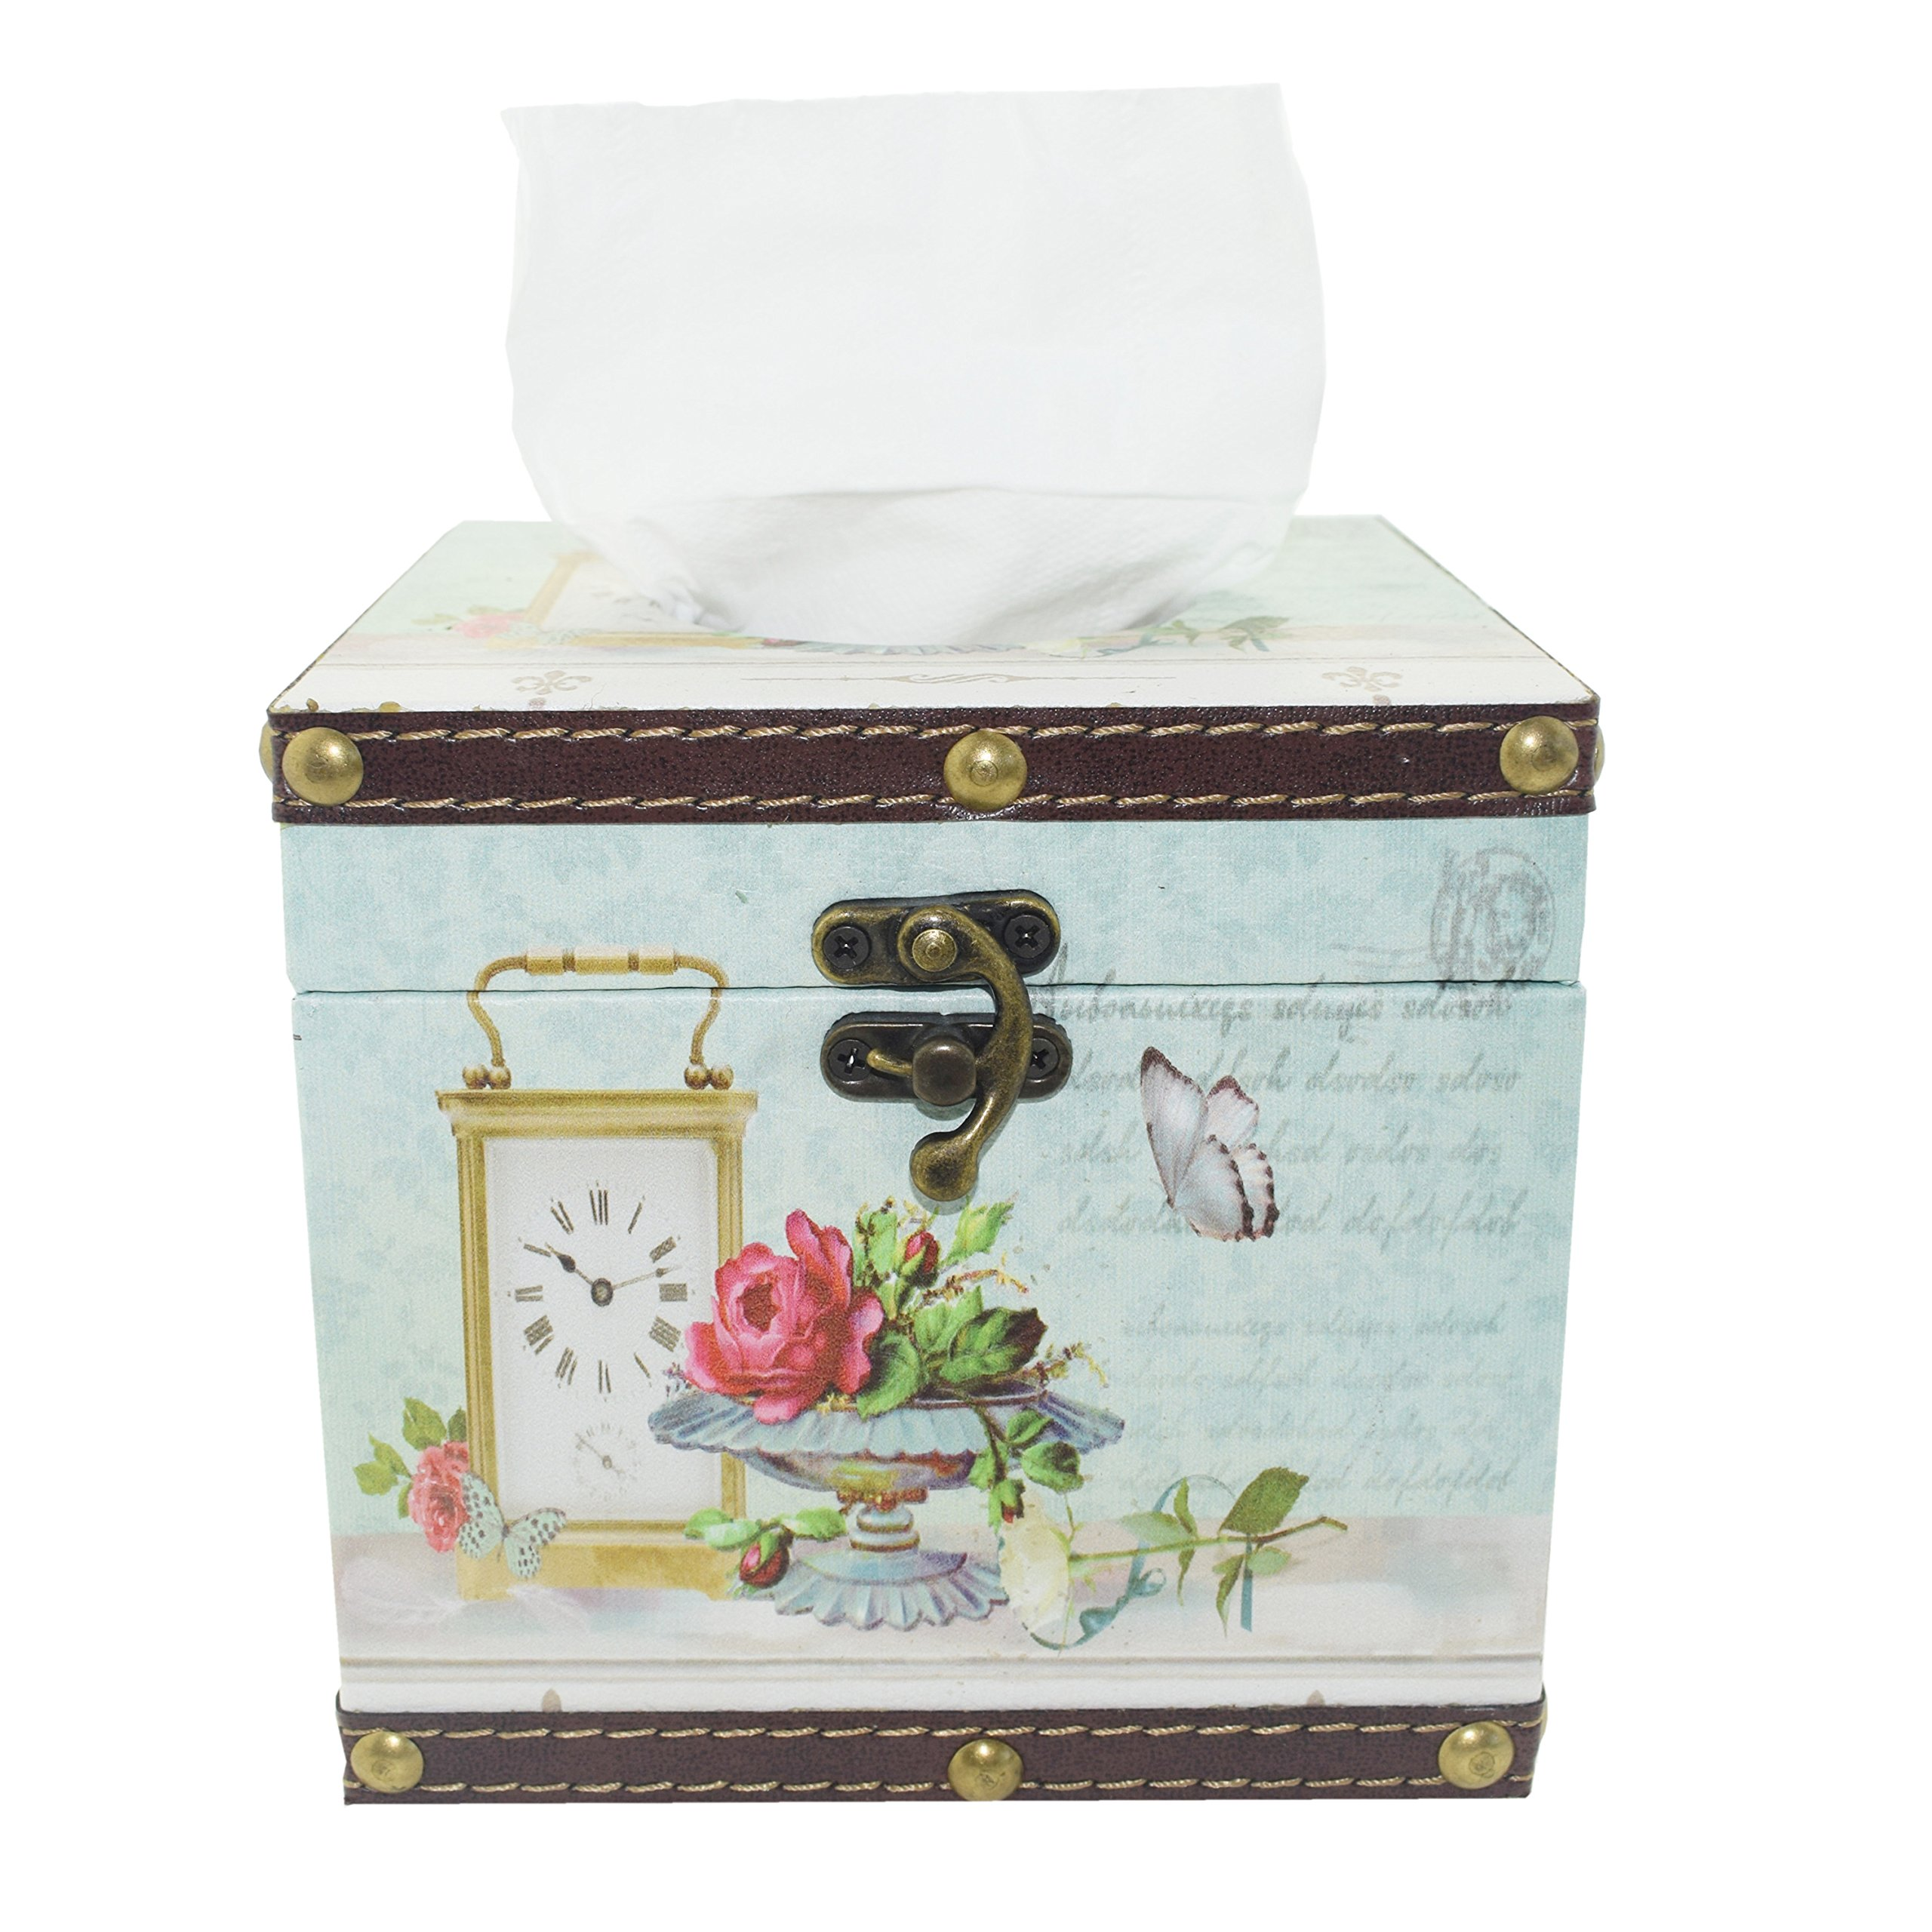 Ulove Prs Vintage Tissue Box Holder - Decorative Case Kitchen, Dining Living Room - Square Handmade Tissue Case Waterproof Faux Leather Japanese Printing Technology (Butterfly-B)